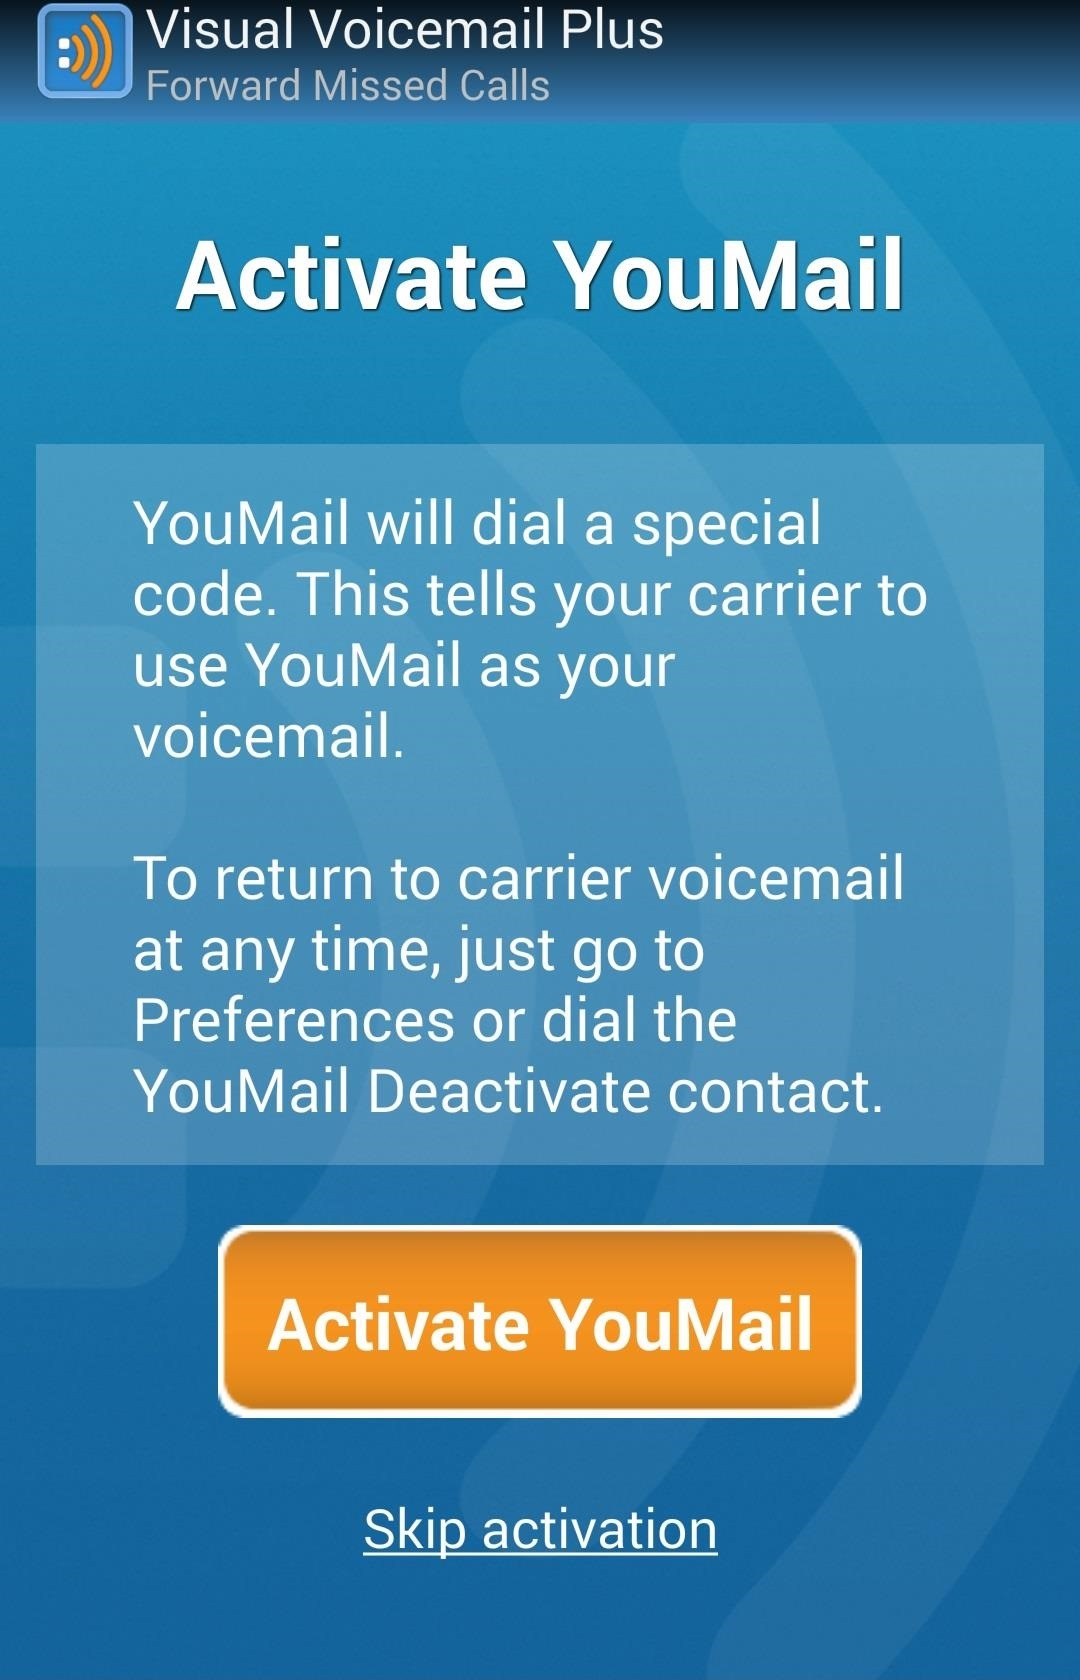 How To Give Your Friends Custom Voicemail Greetings Unwanted